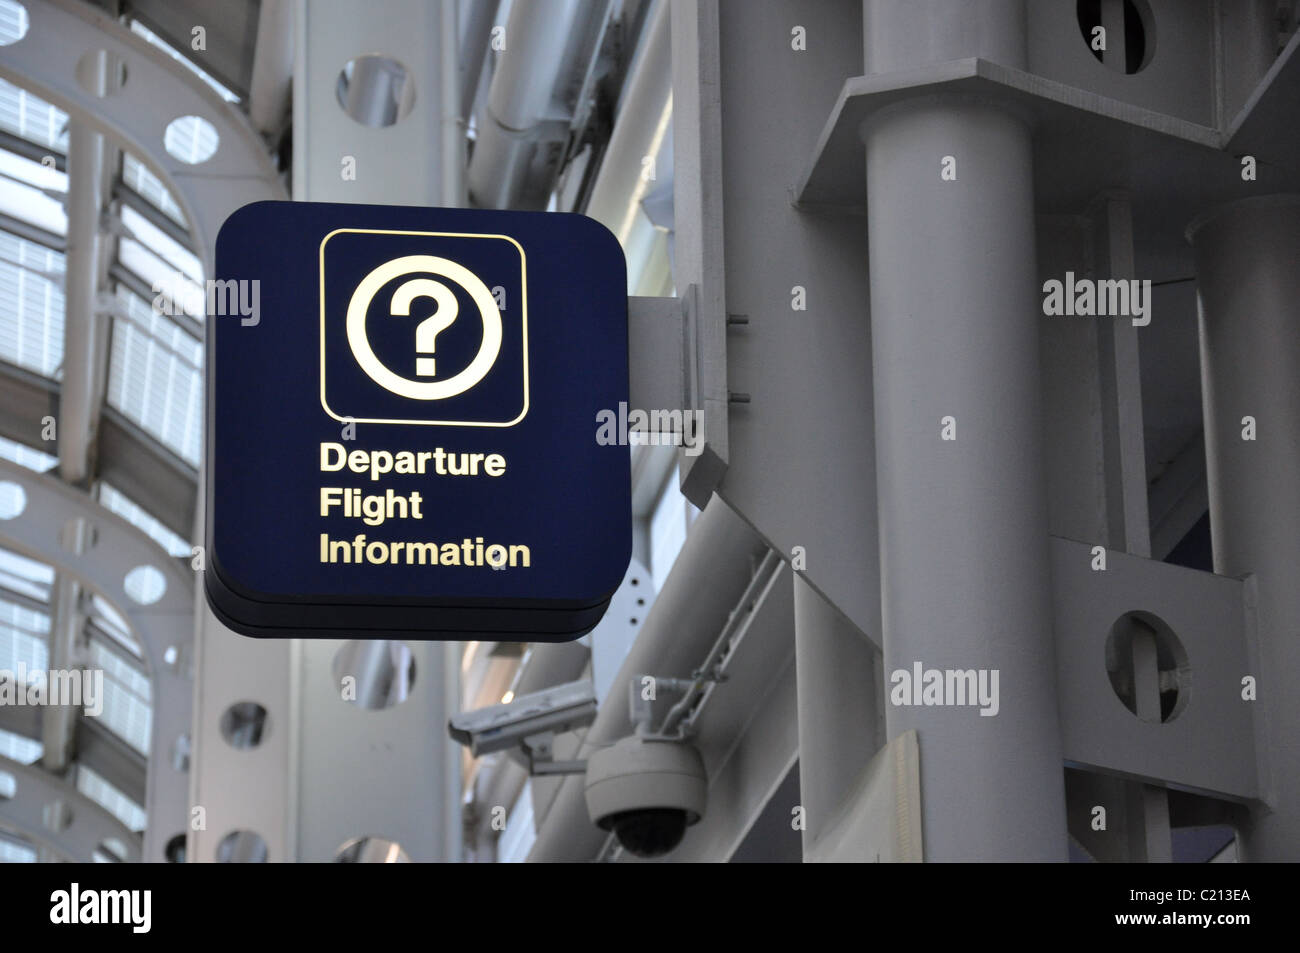 A dark blue sign reading Departure Flight Information with a question mark symbol against a gray industrial background - Stock Image